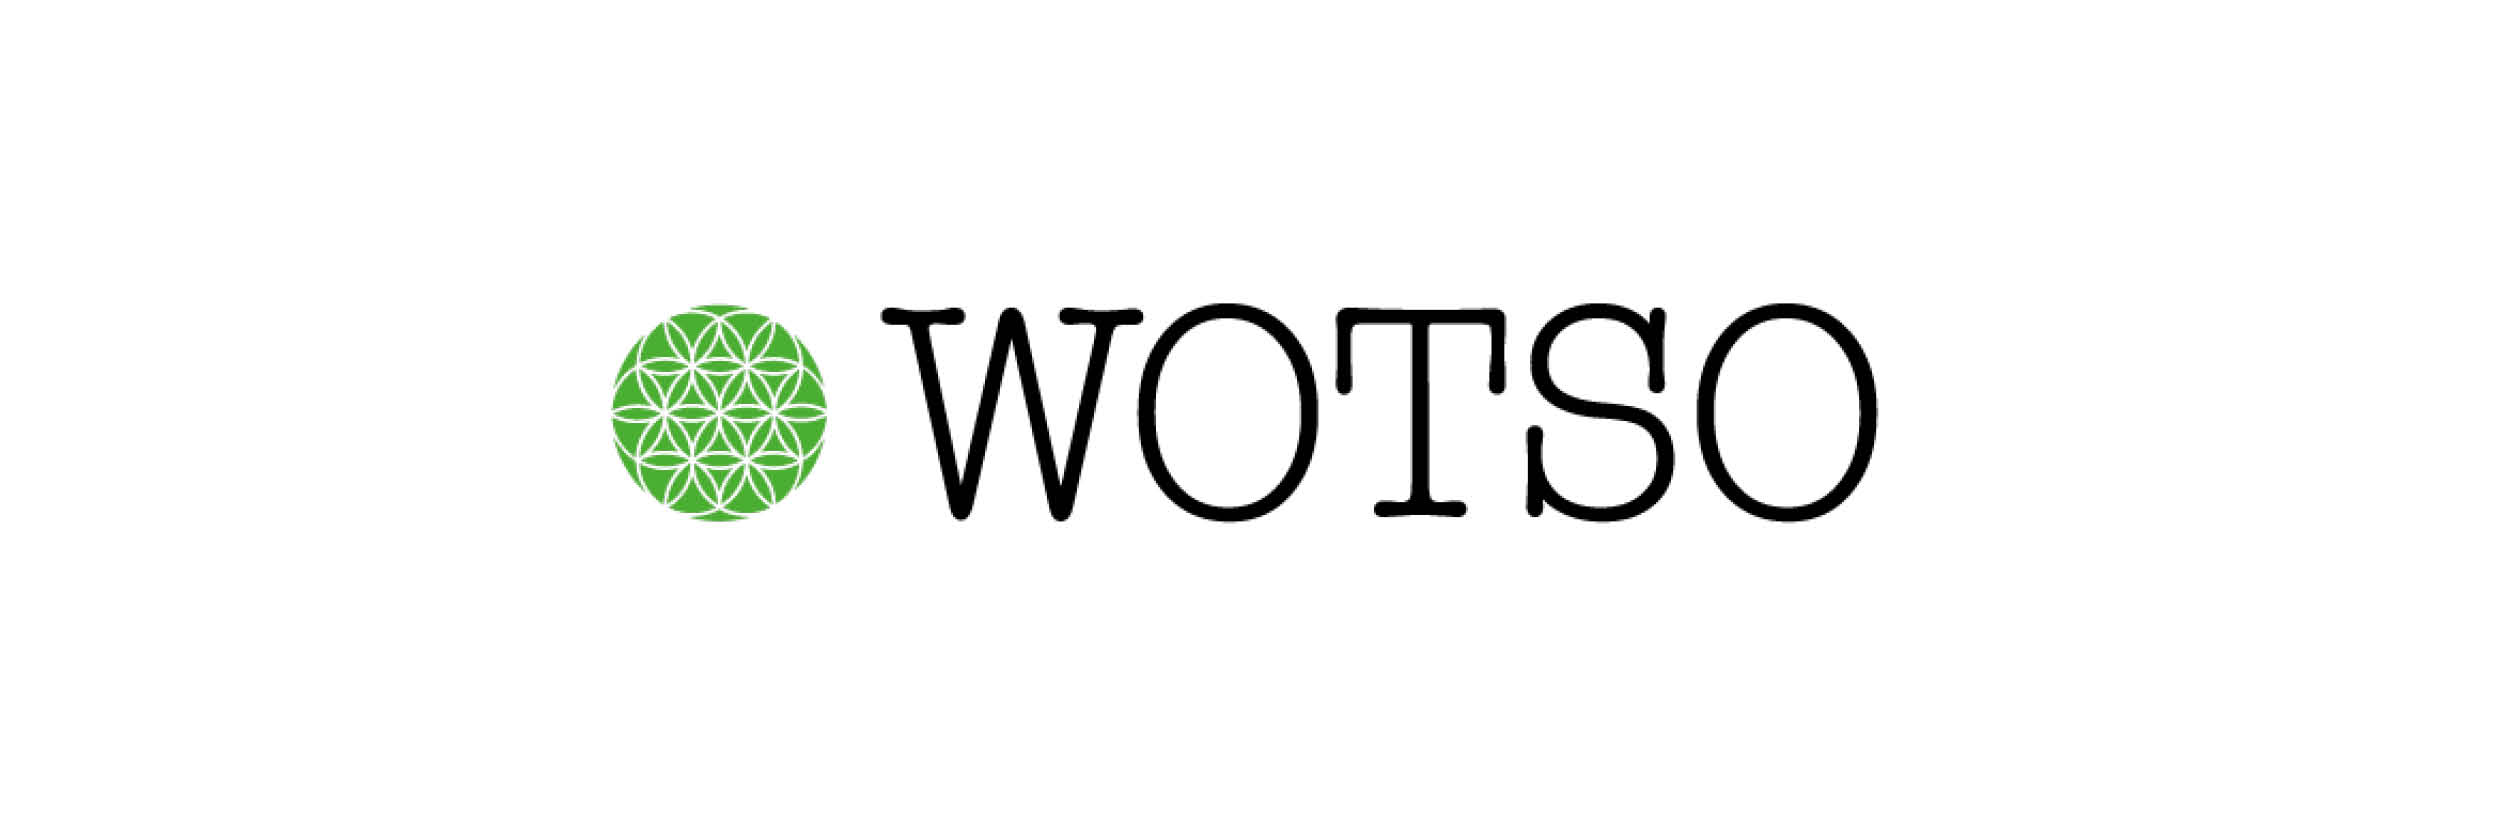 WOTSO Workspace serviced offices